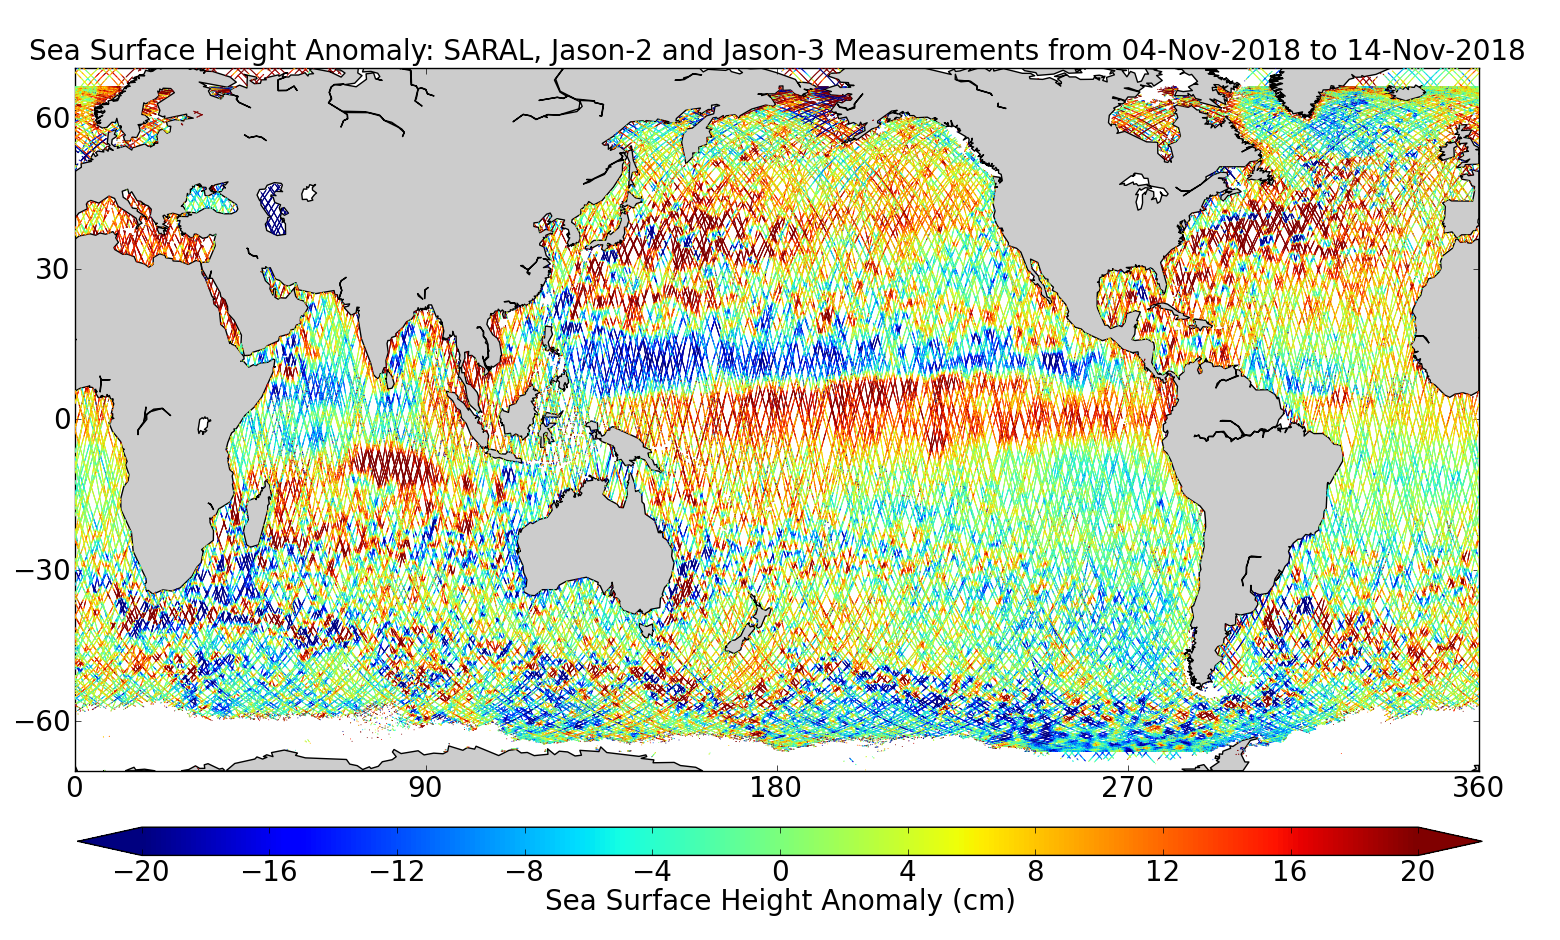 Sea Surface Height Anomaly: SARAL, Jason-2 and Jason-3 Measurements from 04-Nov-2018 to 14-Nov-2018